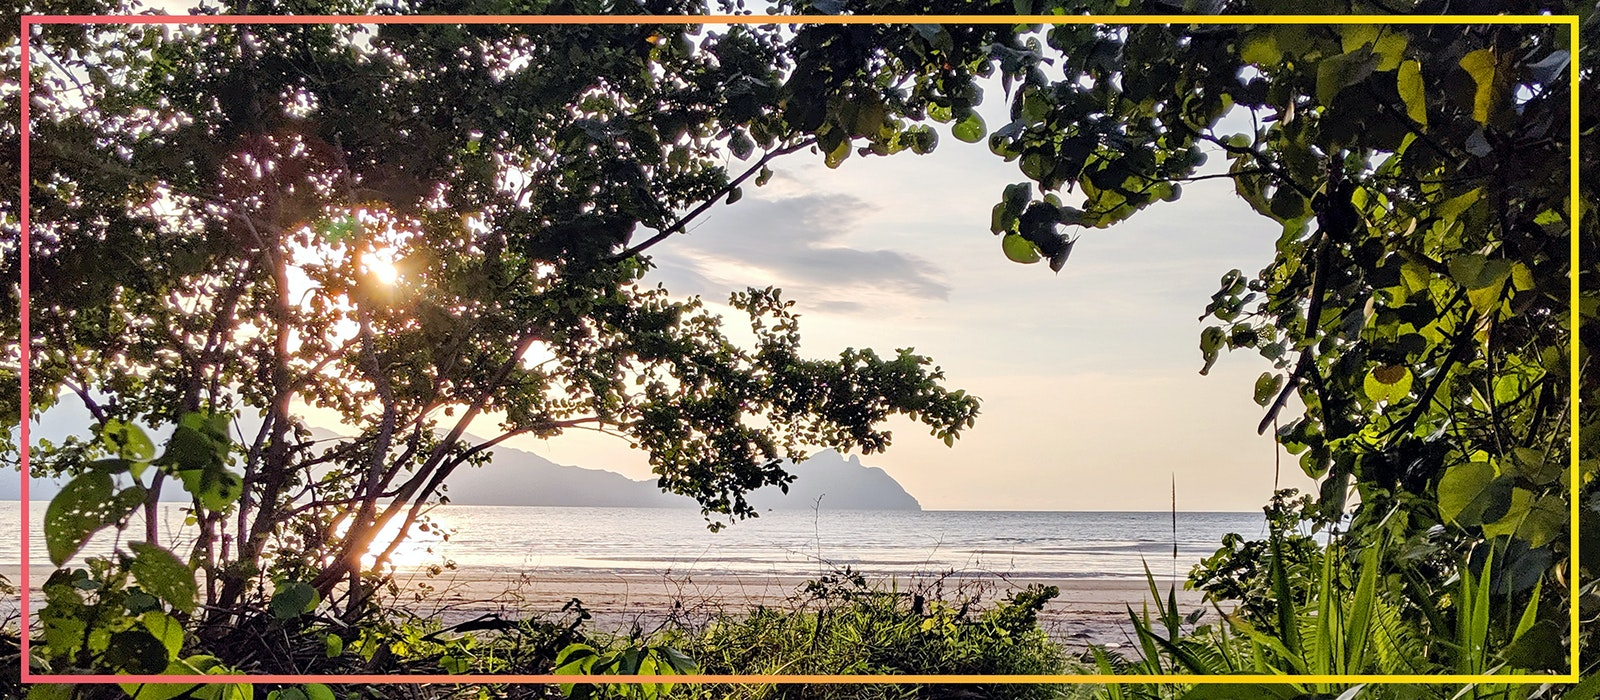 Borneo boasts beautiful islands and thriving cities, but most travelers are drawn here for its jungles and rare animals.